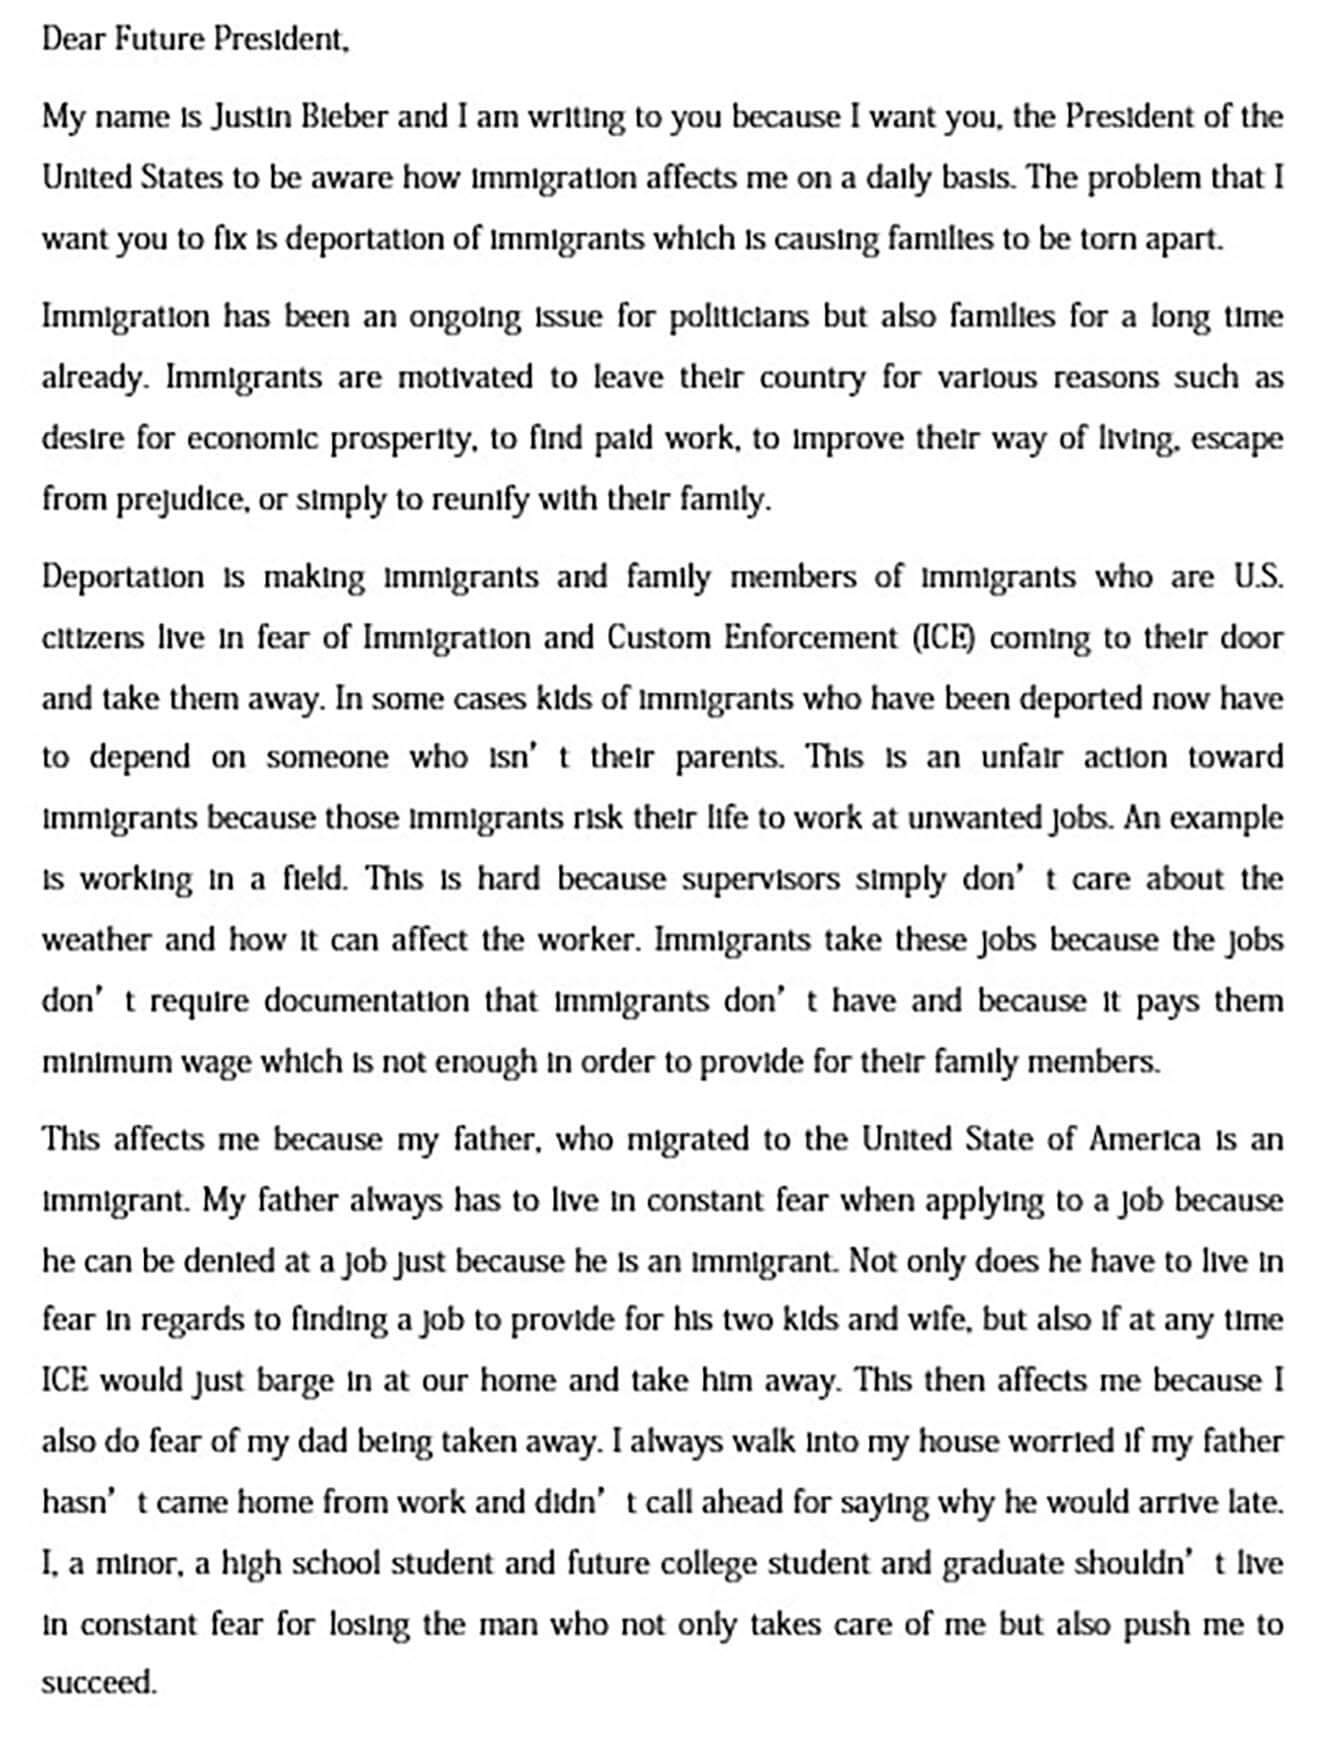 Letter of Support to Stop Deportation